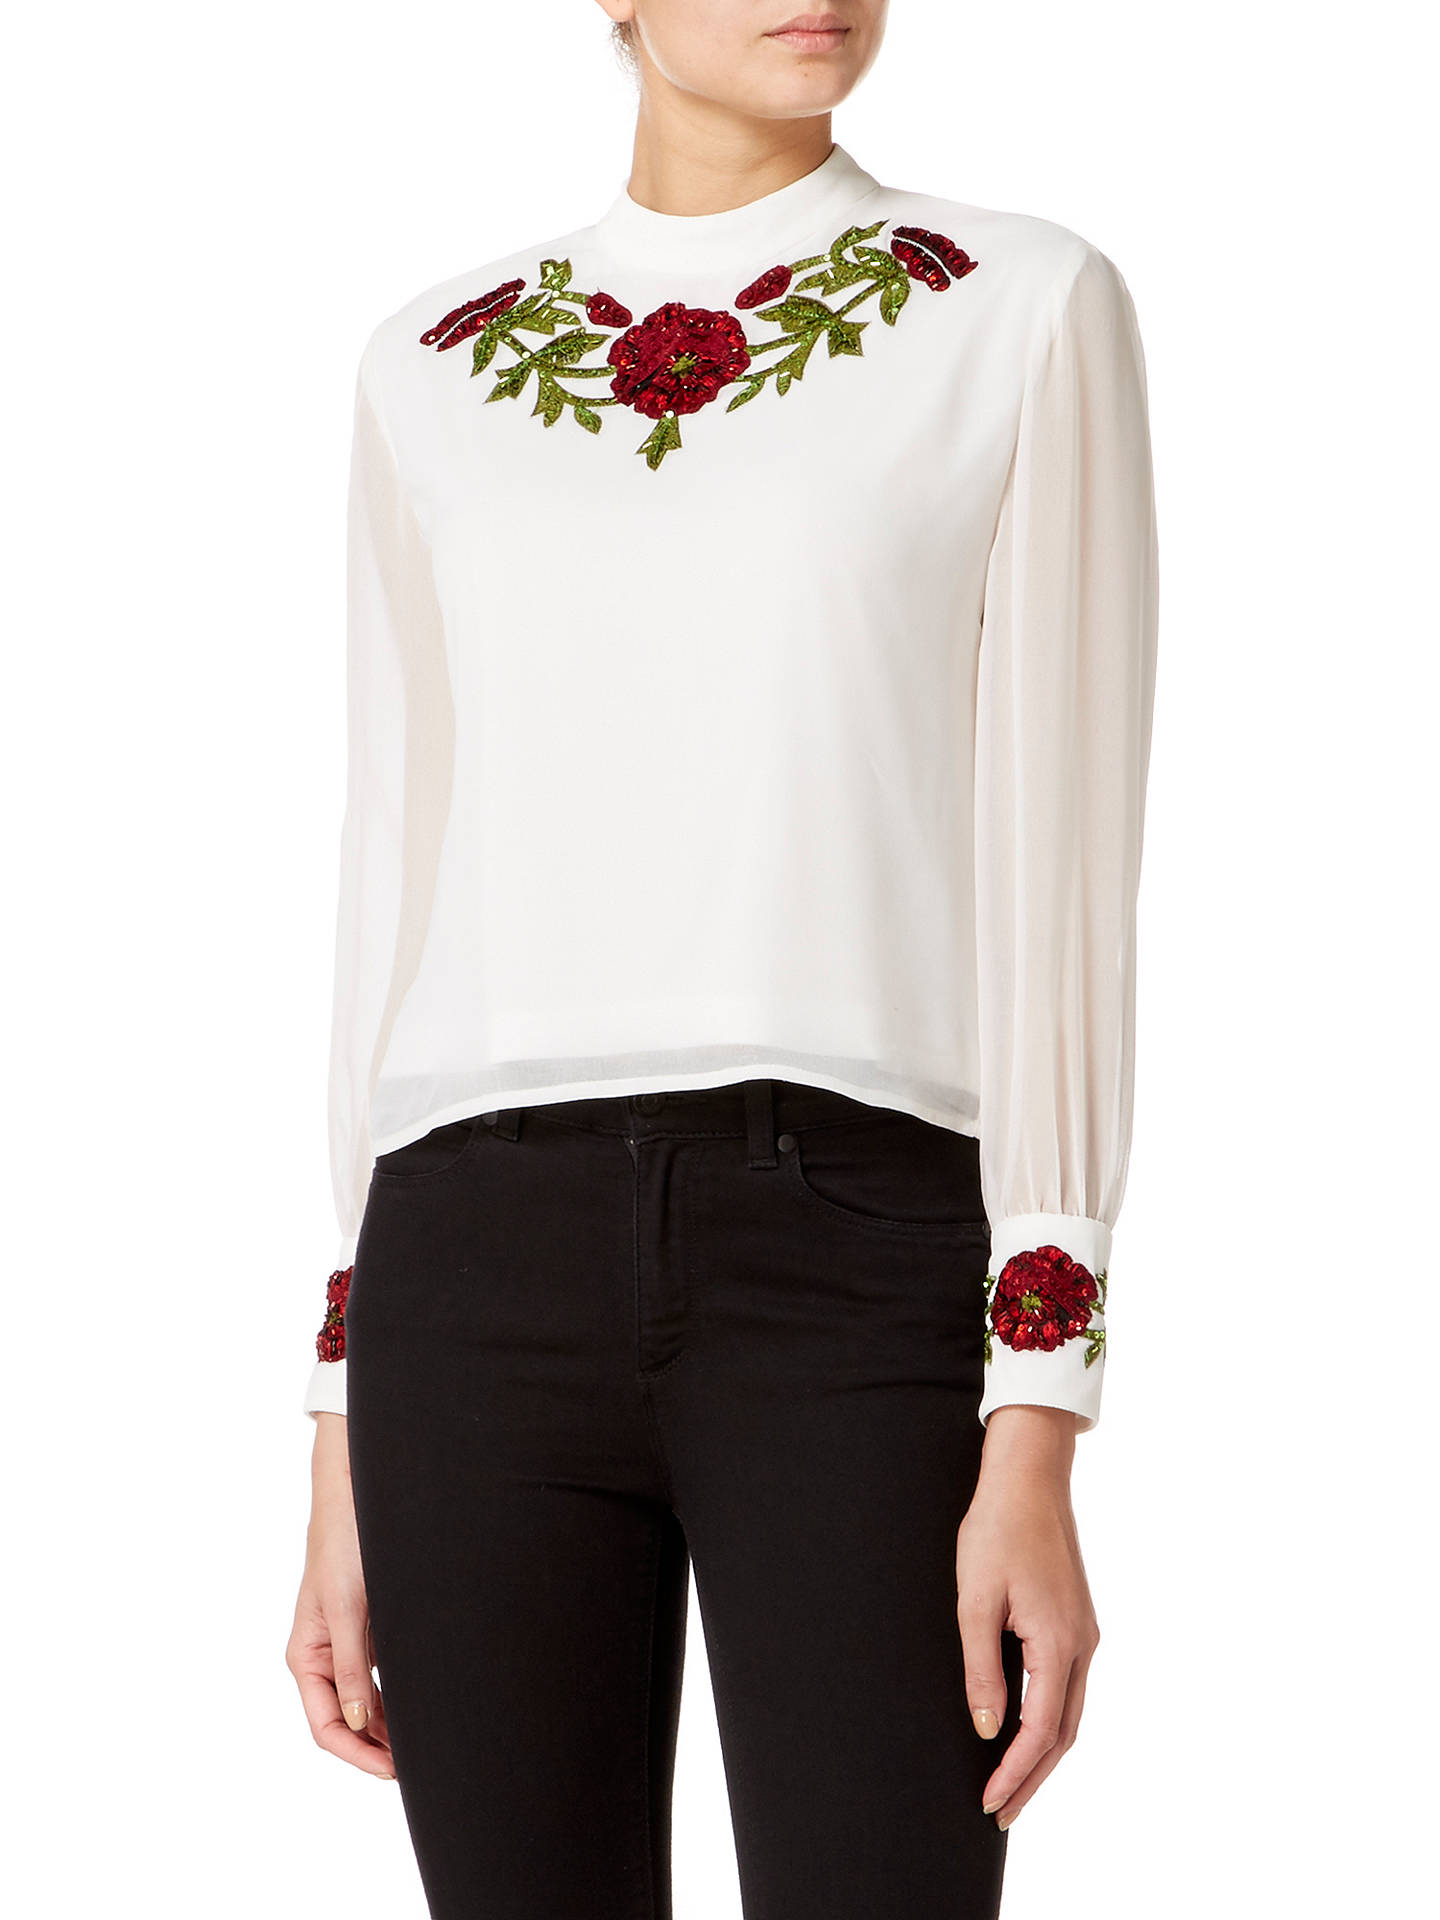 BuyRaishma Poppy Blouse, White, 8 Online at johnlewis.com